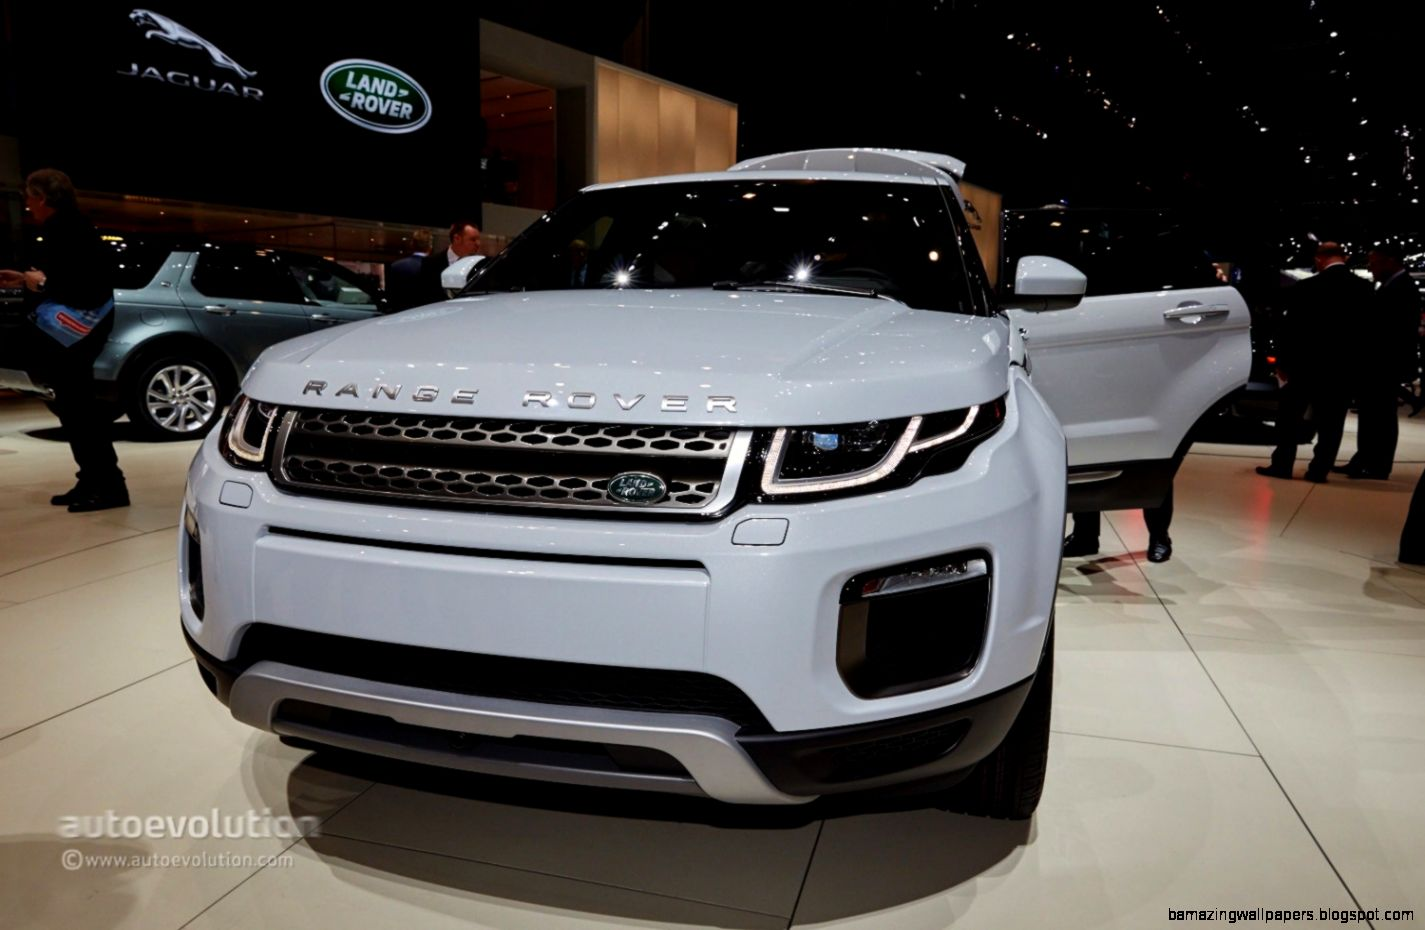 range rover prices amazing wallpapers. Black Bedroom Furniture Sets. Home Design Ideas